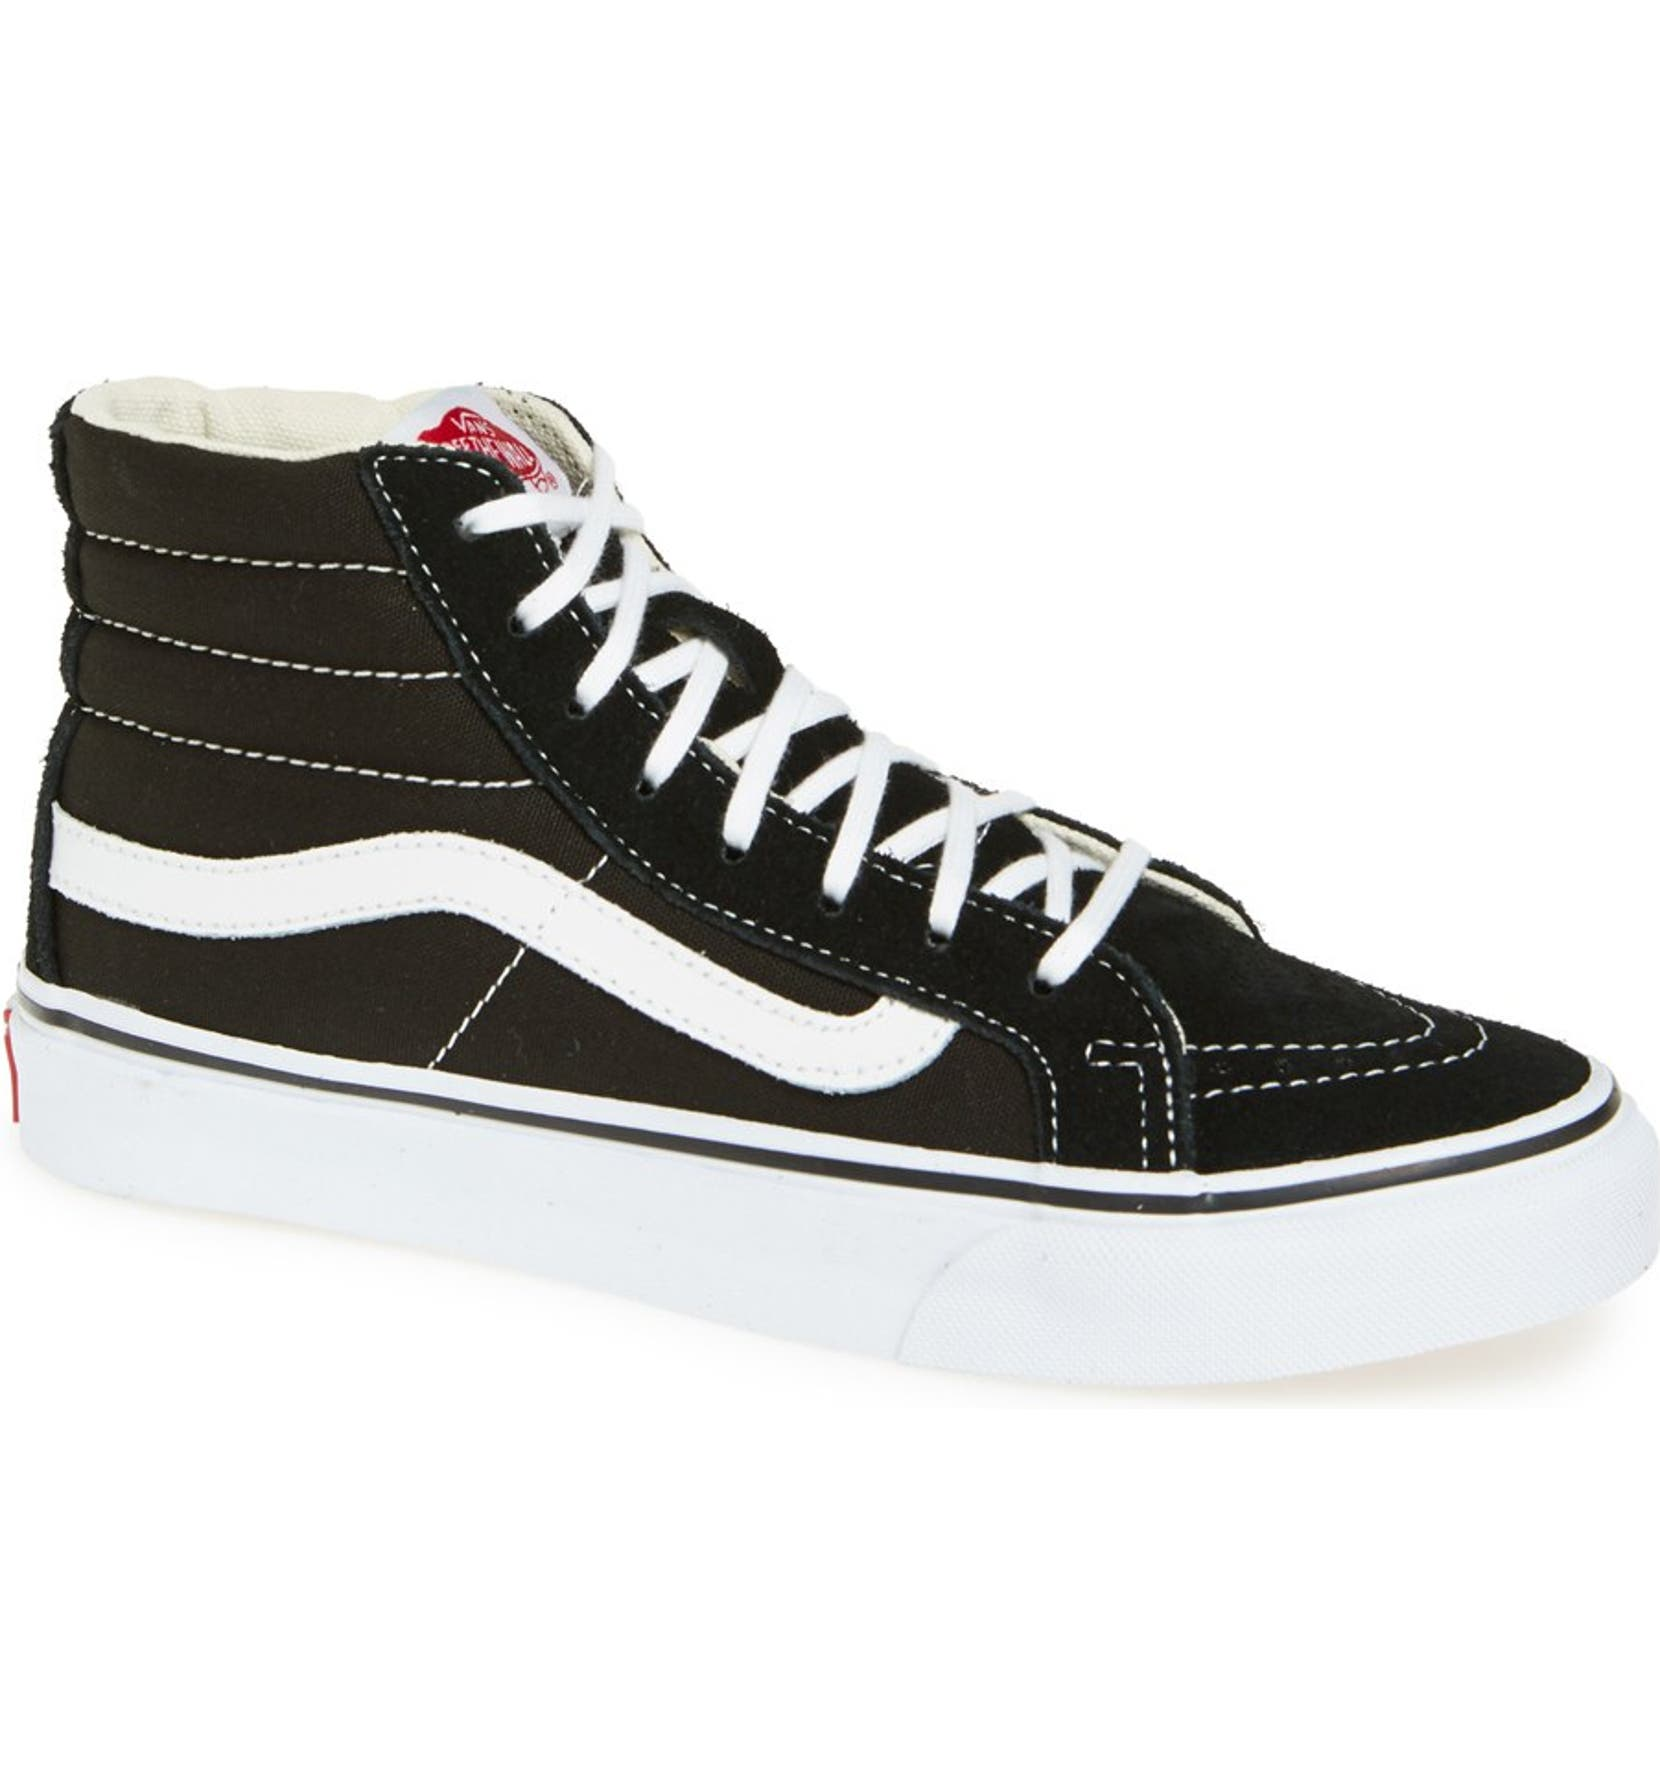 Vans Sk8-Hi Slim High Top Sneaker (Women)  6b4dc7edb